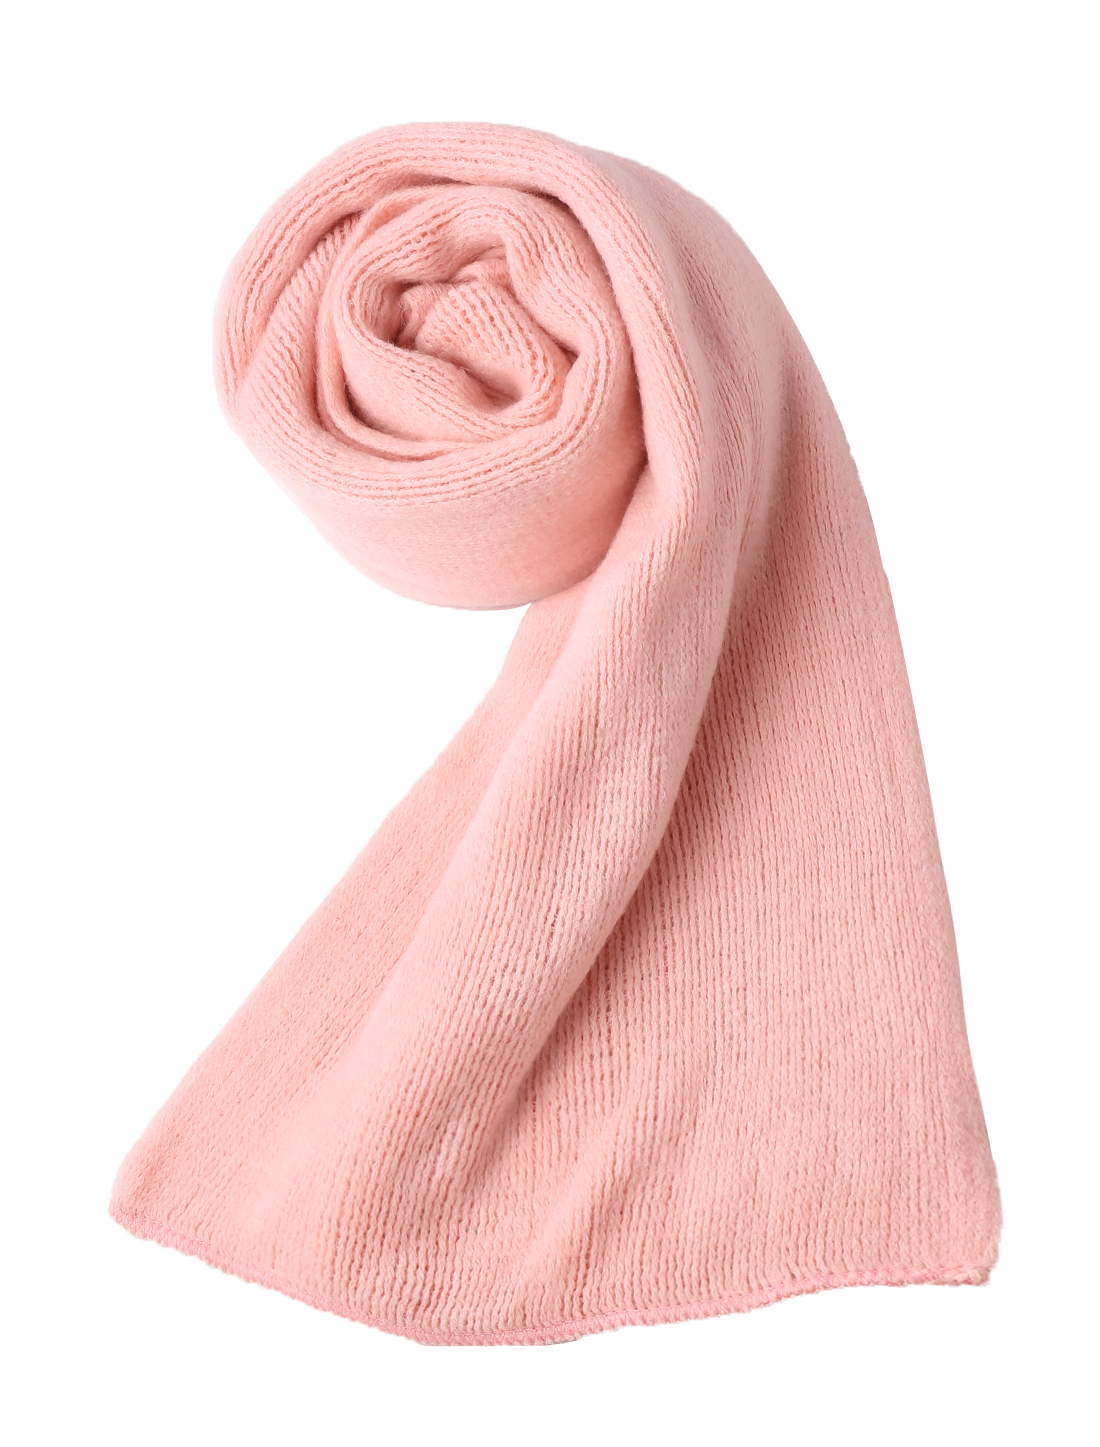 "Unisex Pink Stylish Long Acrylic Rectangle Style 11.8"" Width Winter Scarves"